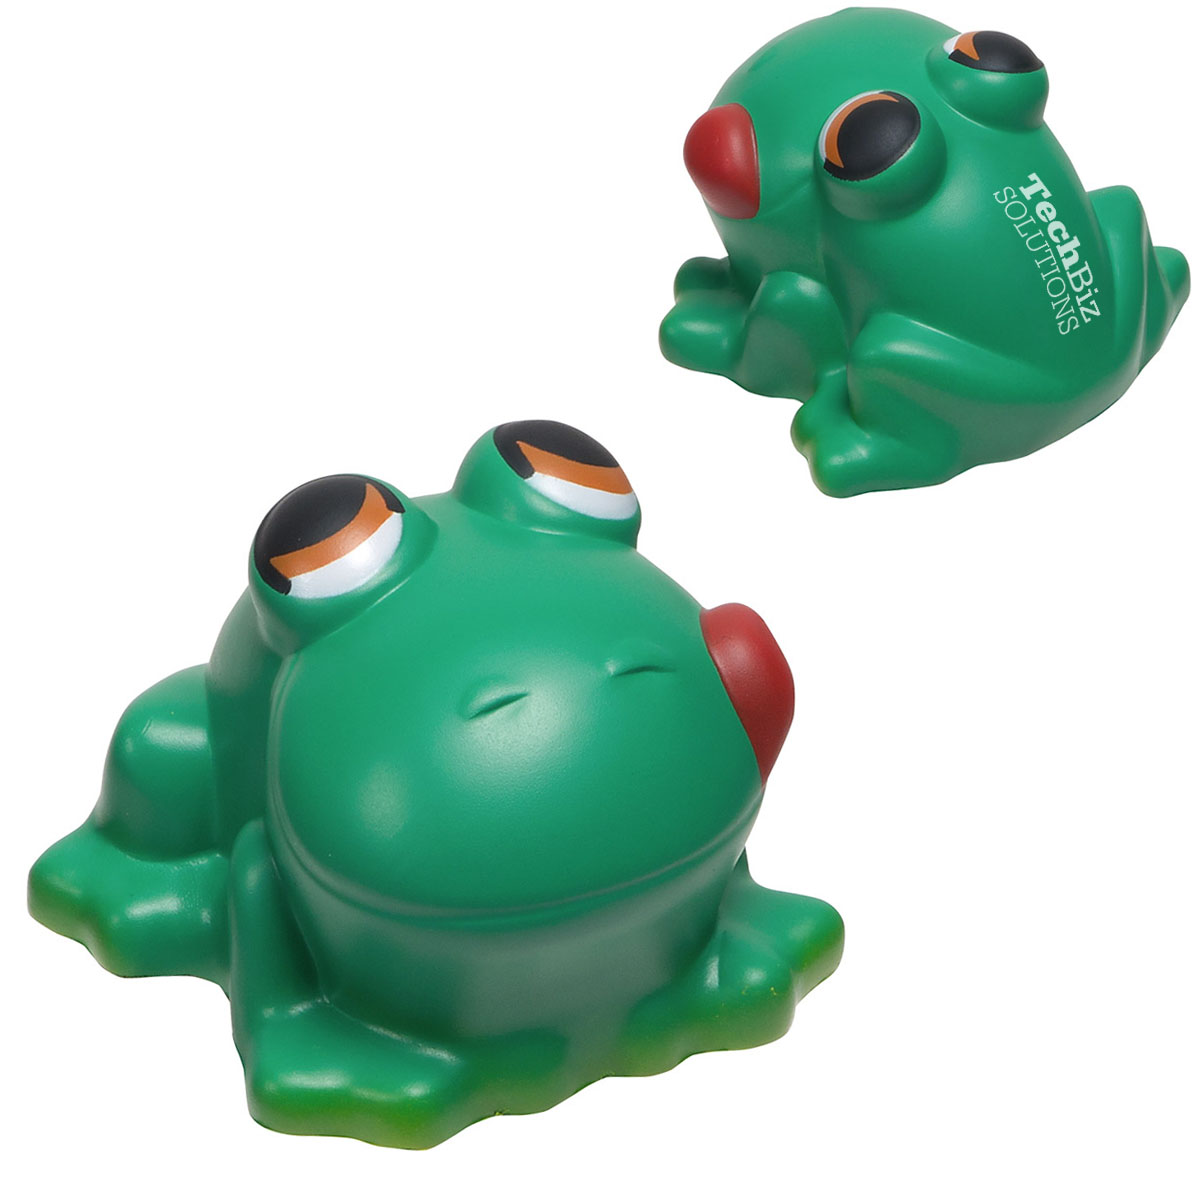 Cartoon Frog Stress Reliever